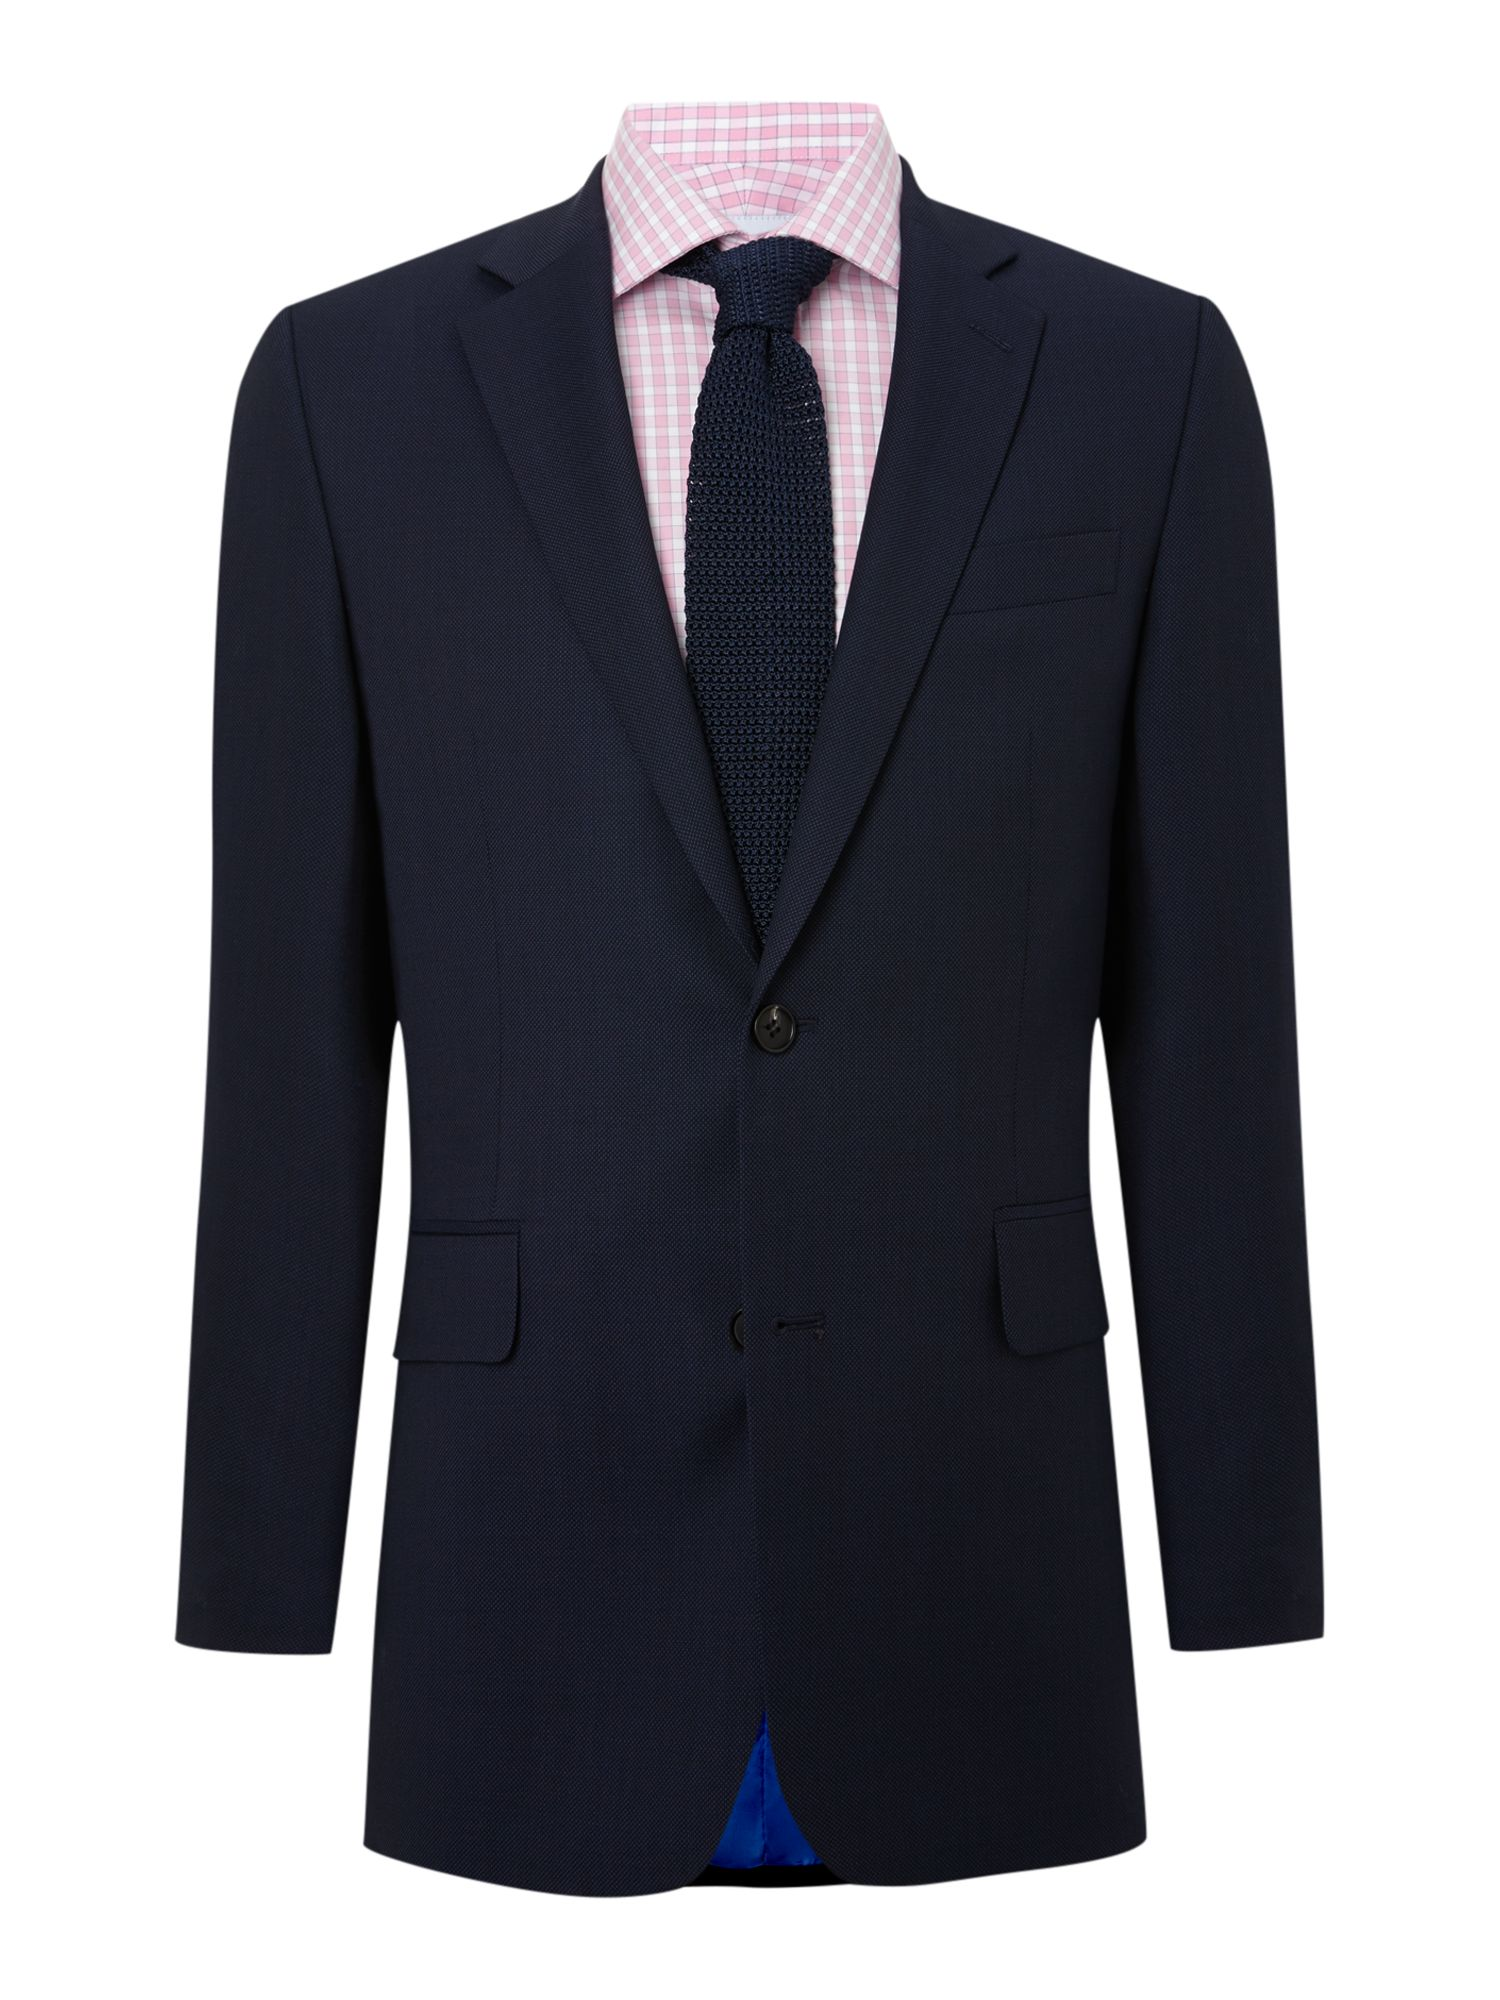 Birdseye single breasted suit